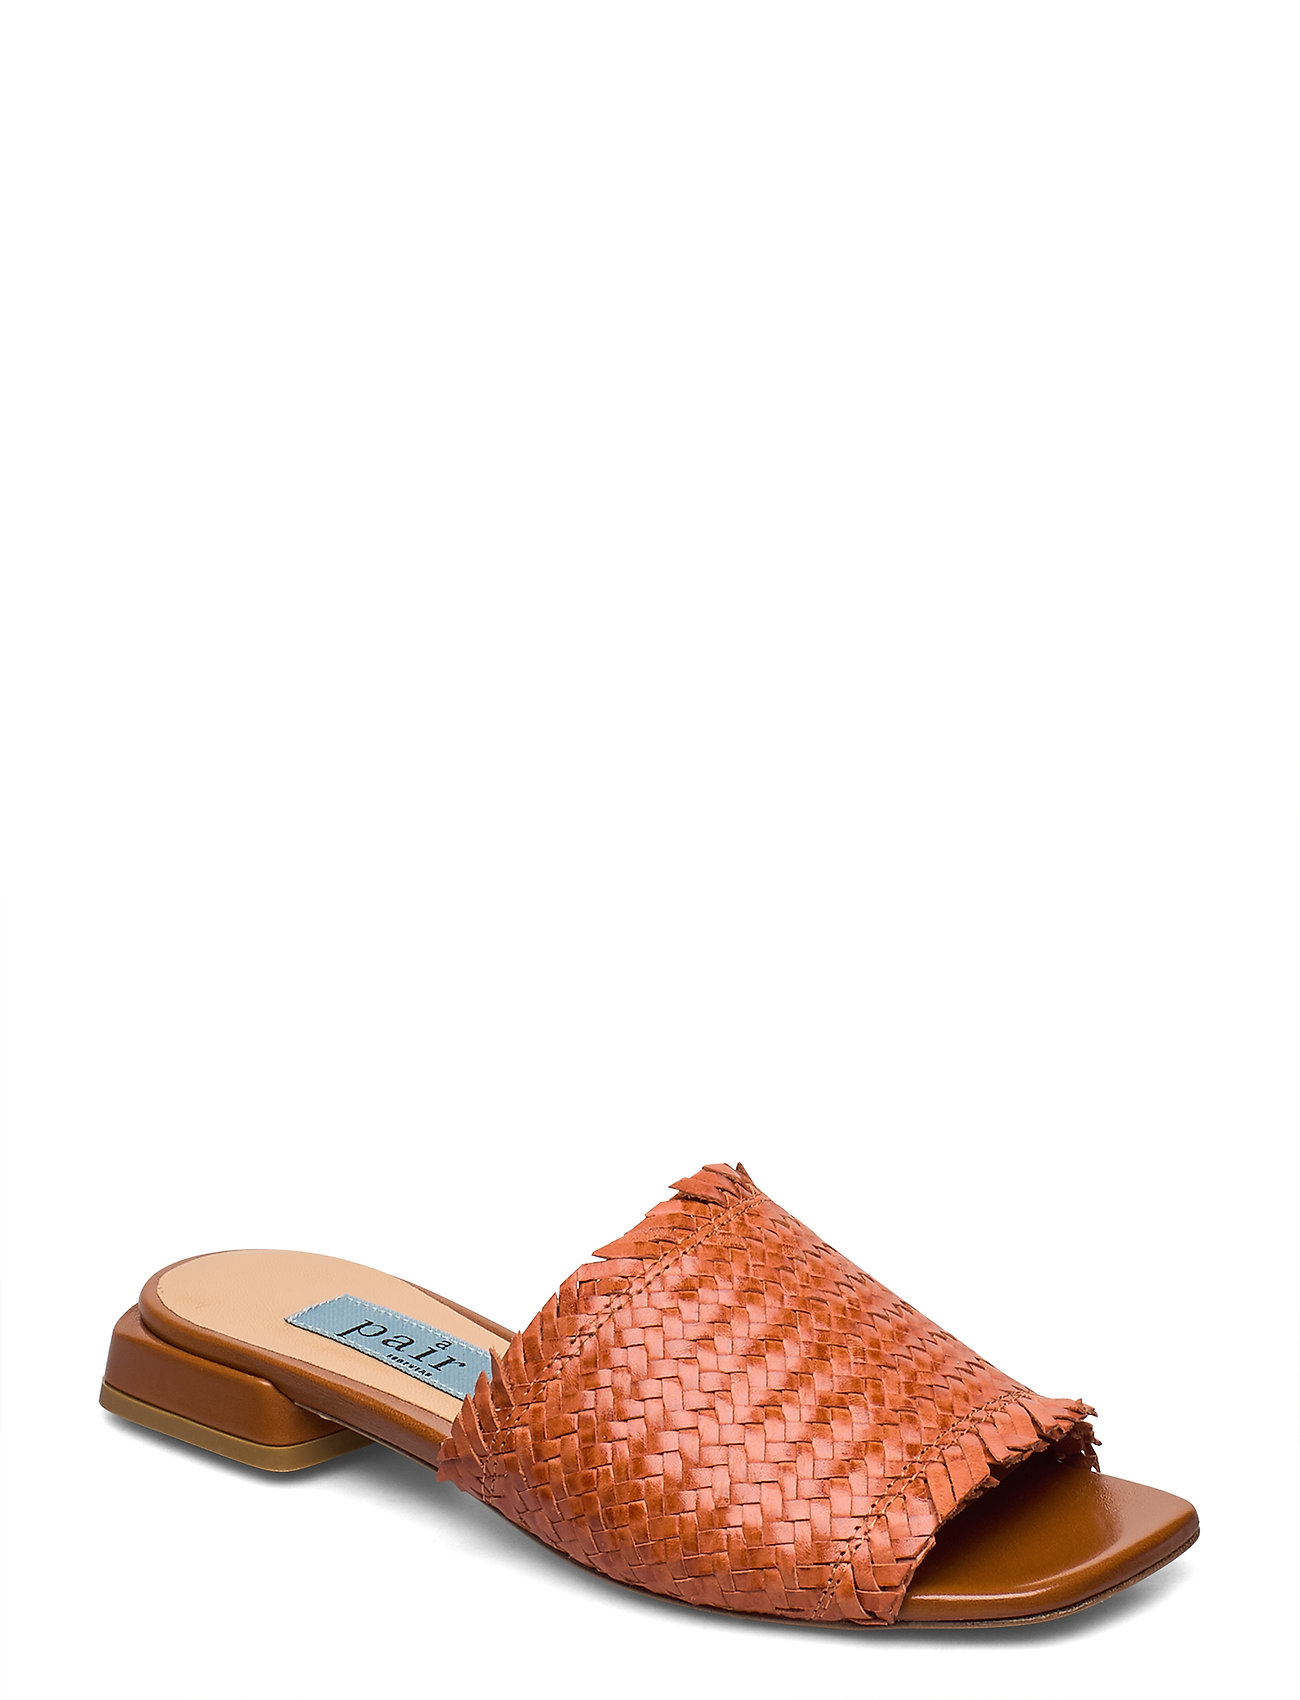 Image of Braided Flat Sandal Shoes Summer Shoes Flat Sandals Brun Apair (3370075611)